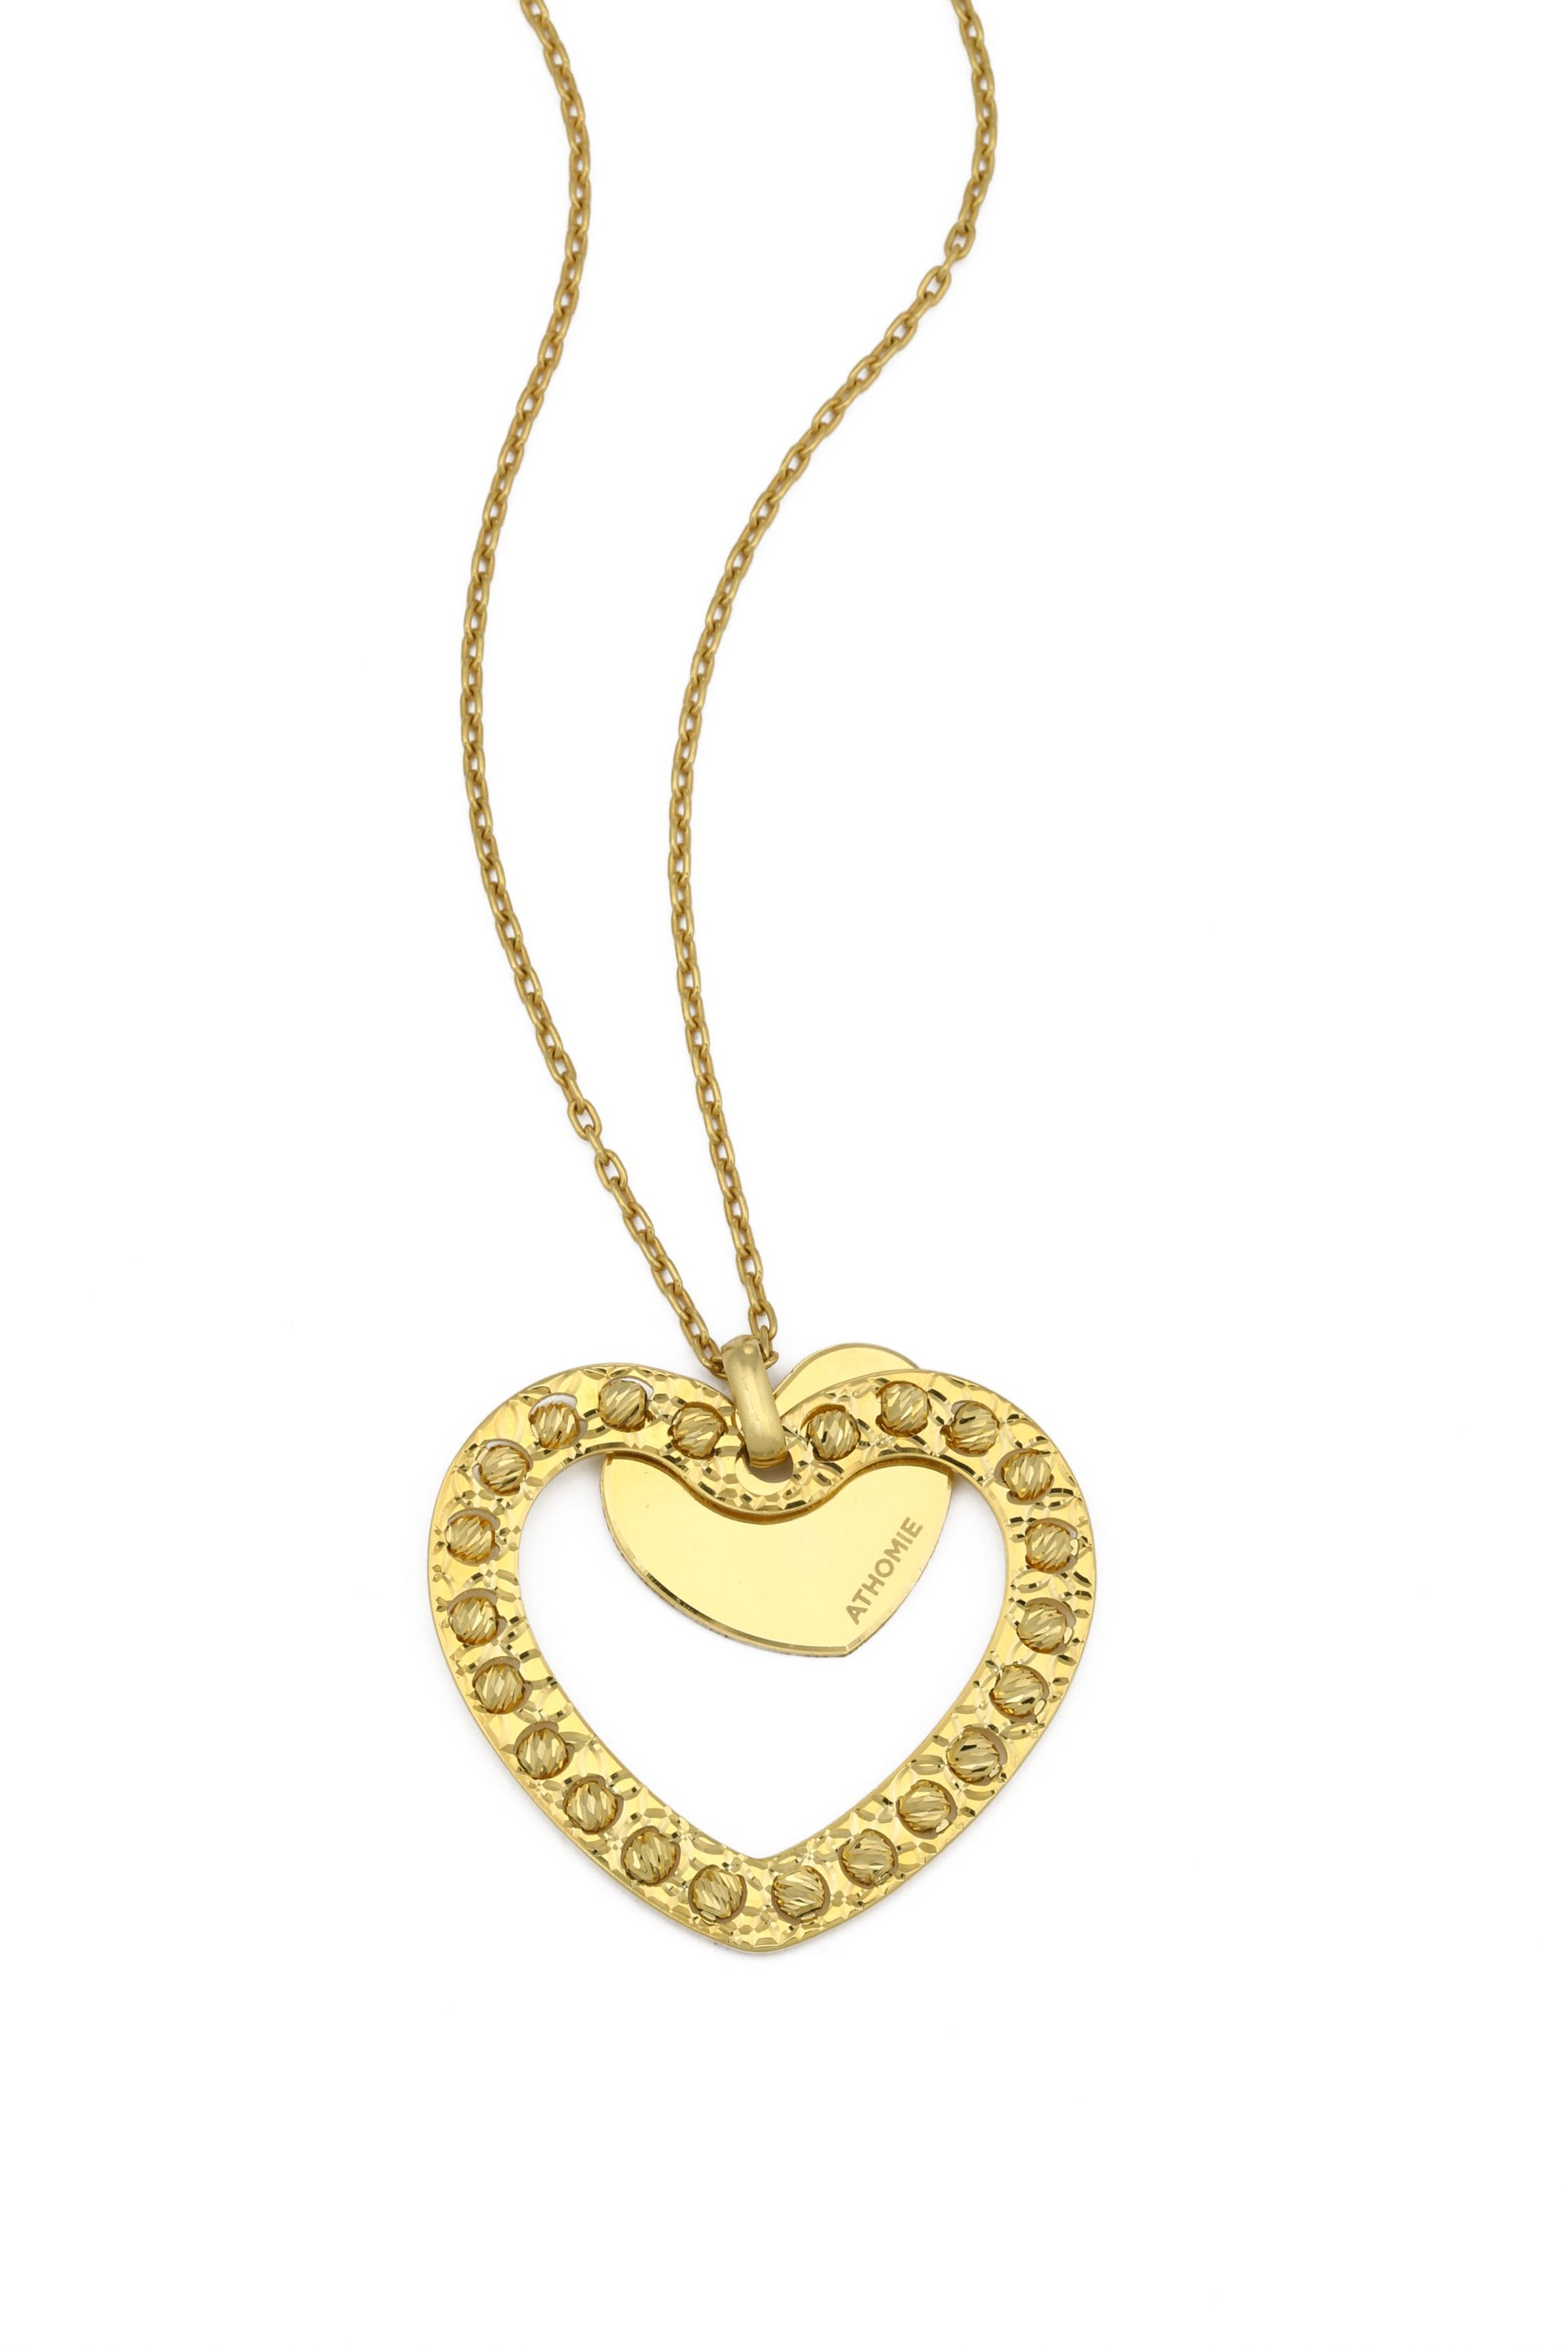 Handmade diamond cut 24ct goldheart pendant